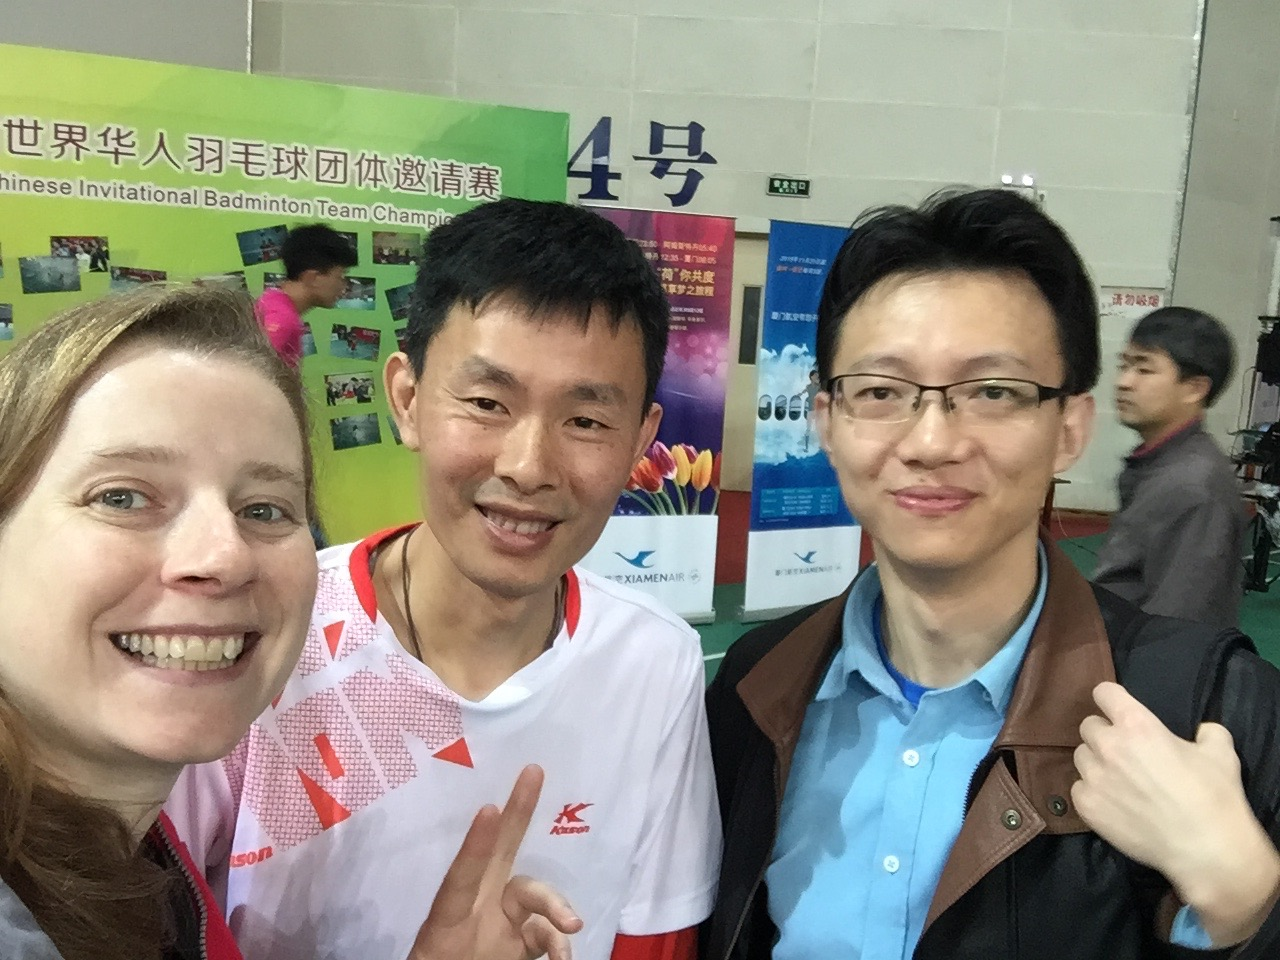 My teacher (in the middle, and Xiao He are my only two links to the Xiamen badminton community. I need their help to get me more involved.